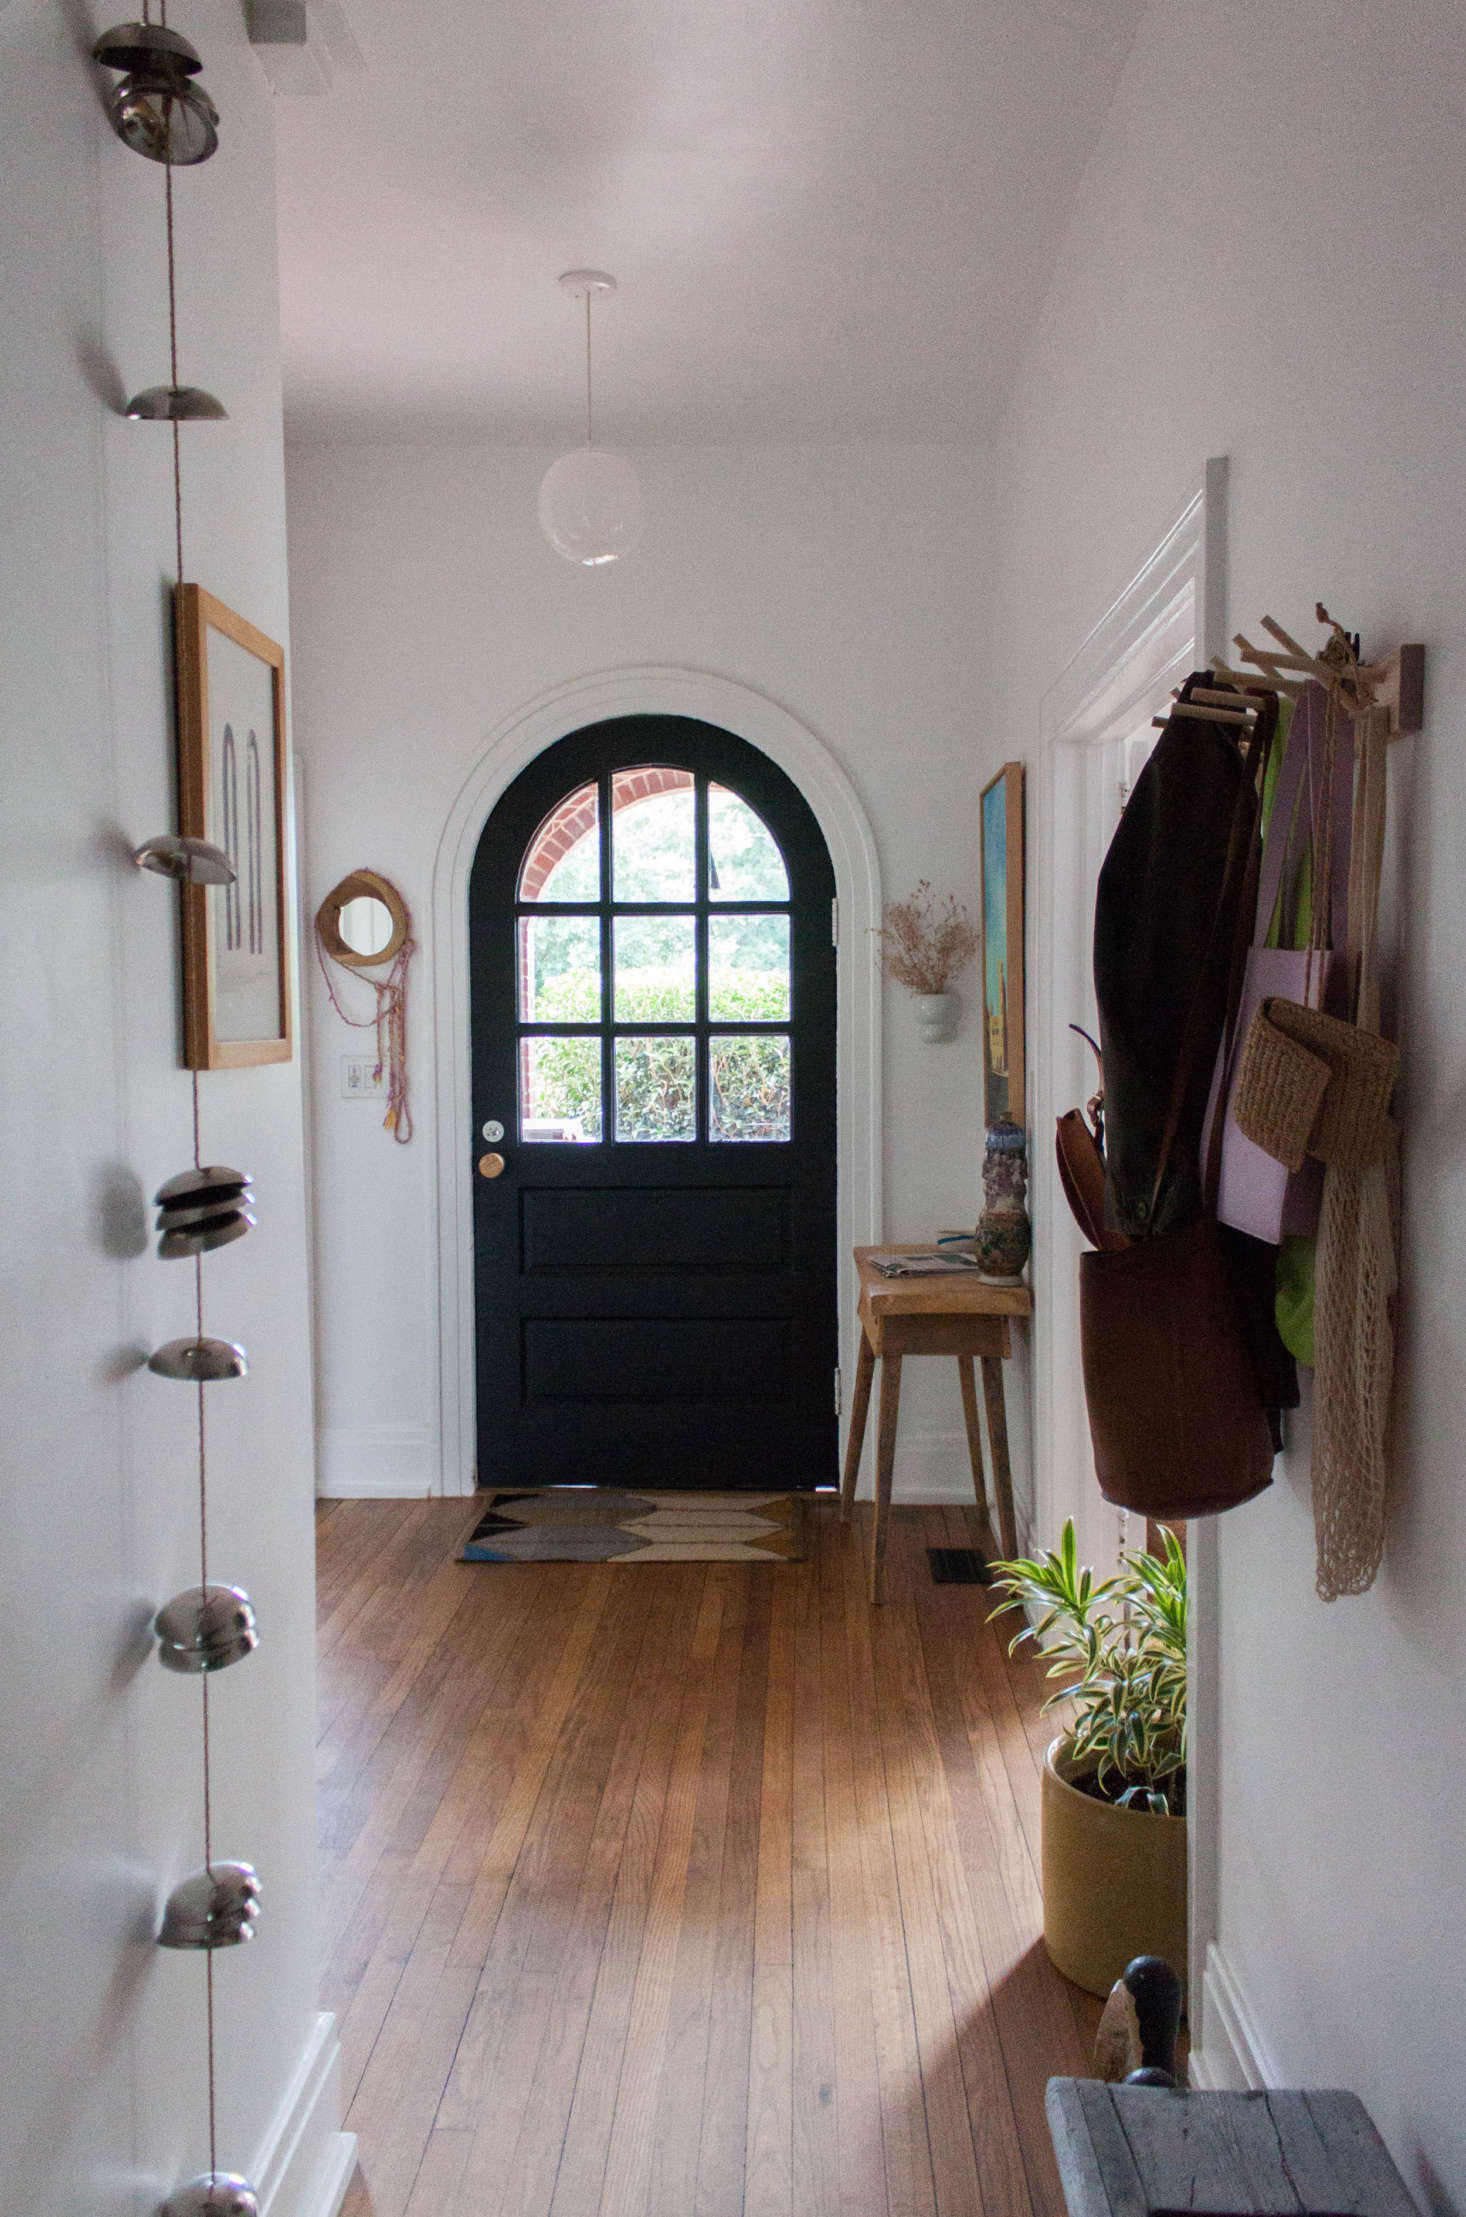 Gabi's eclectic sensibility is apparent as soon as you enter the front door. The pendant light is from Schoolhouse; the doormat is by Alyson Fox for Hawkins NY; the console is from an antique store; and the Iris Hantverk hooks are from EA/ST Co.